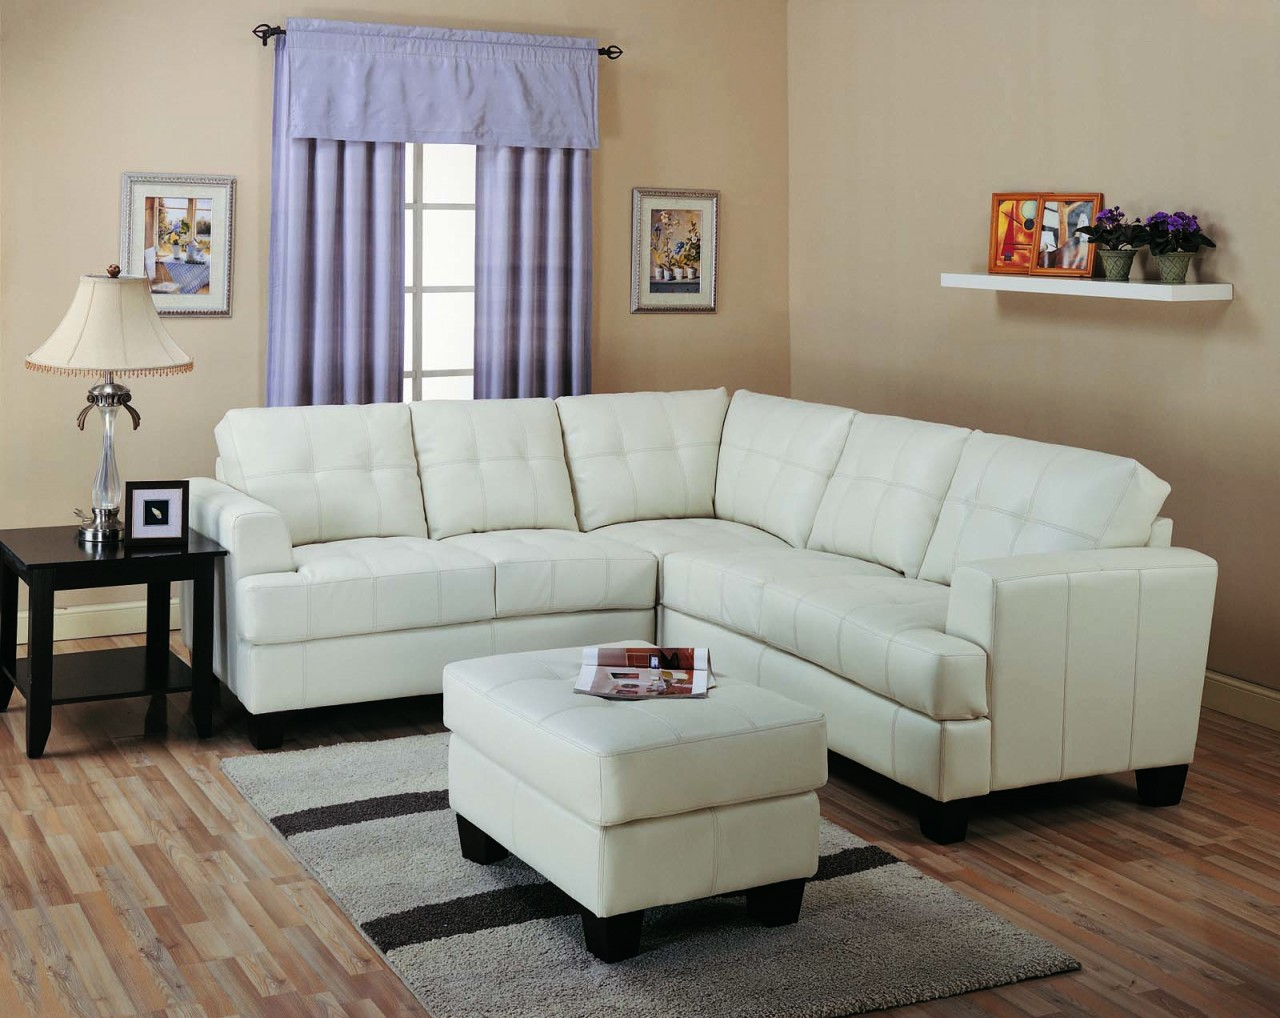 Types of best small sectional couches for small living for Sofa for tiny living room